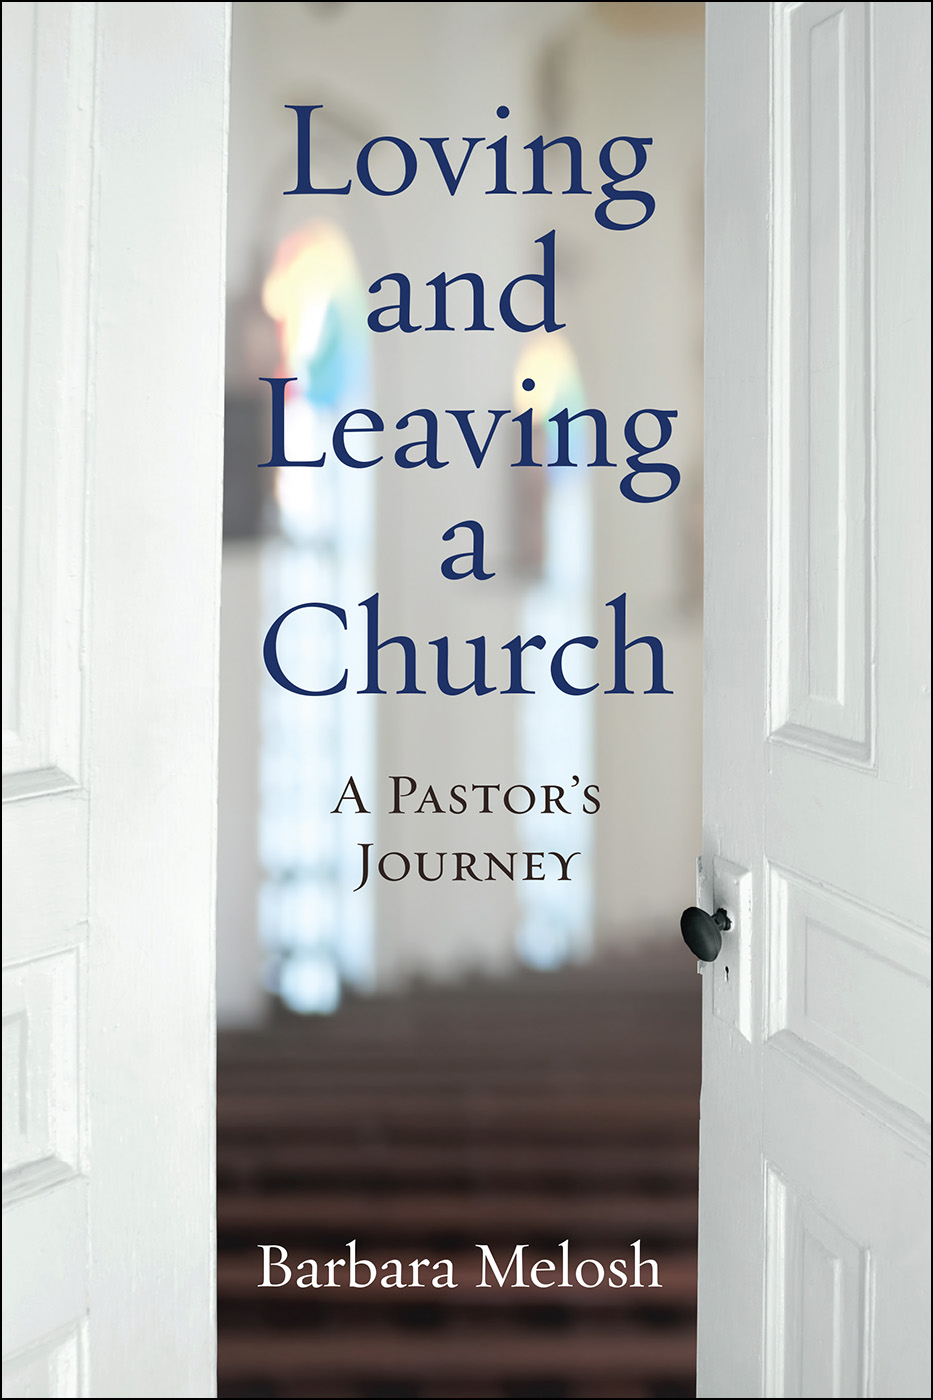 Loving and Leaving a Church